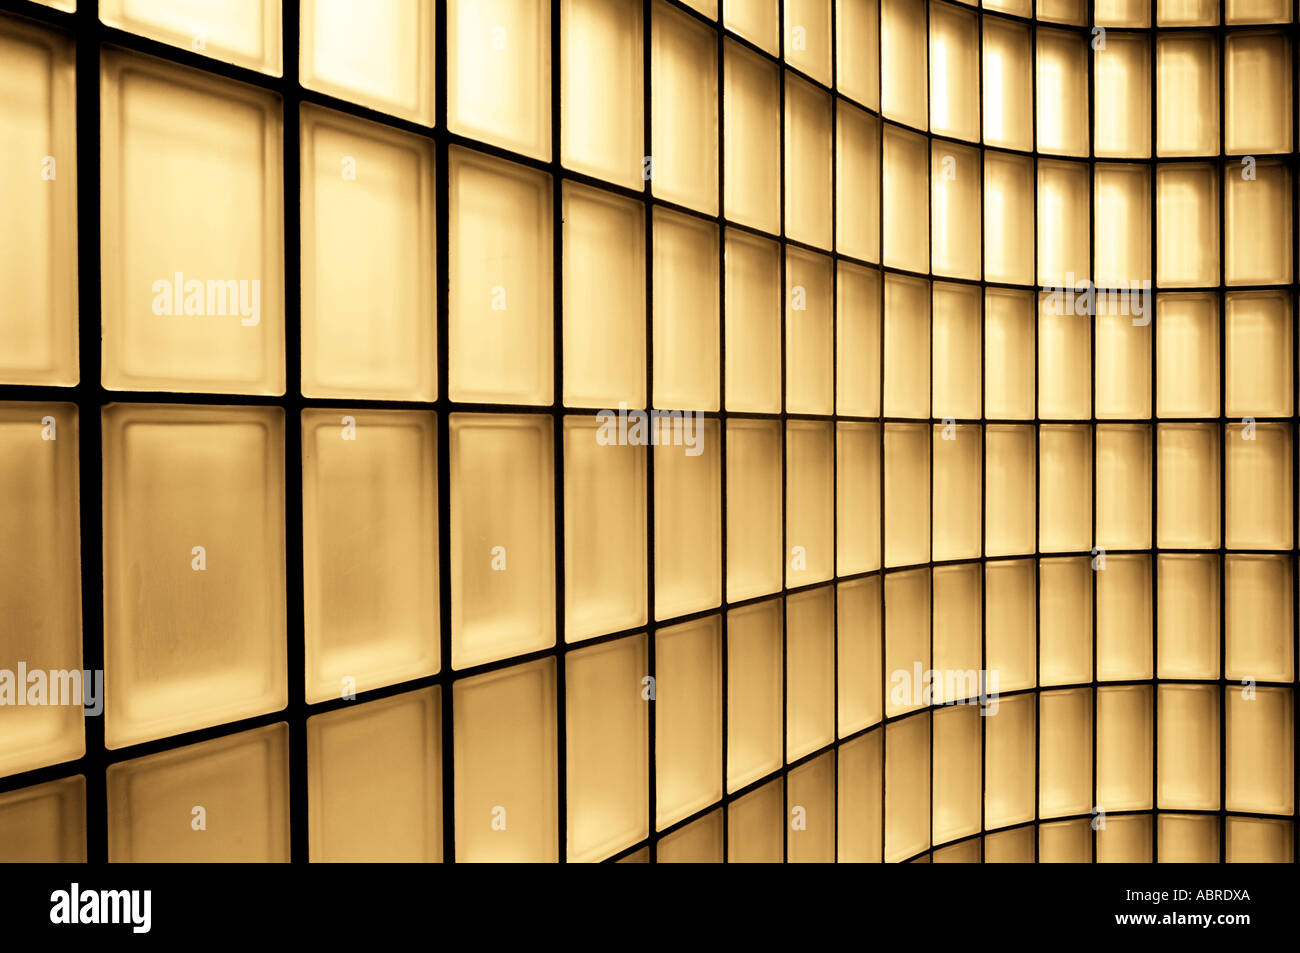 Small Square Glass Bricks In Wall Abstract Design Pattern